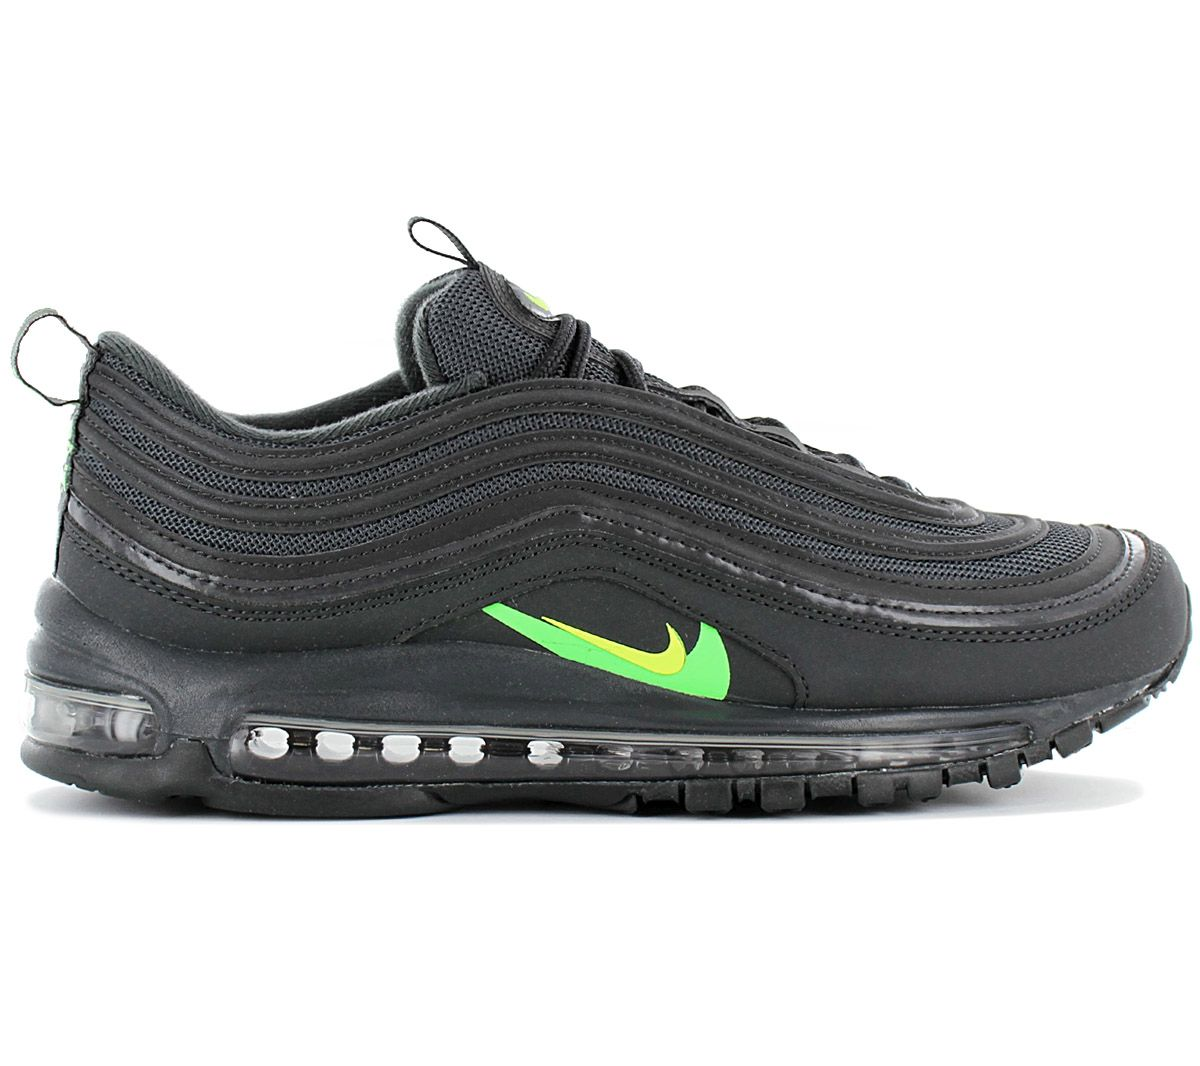 Nike air max 97 - Just Do It pack